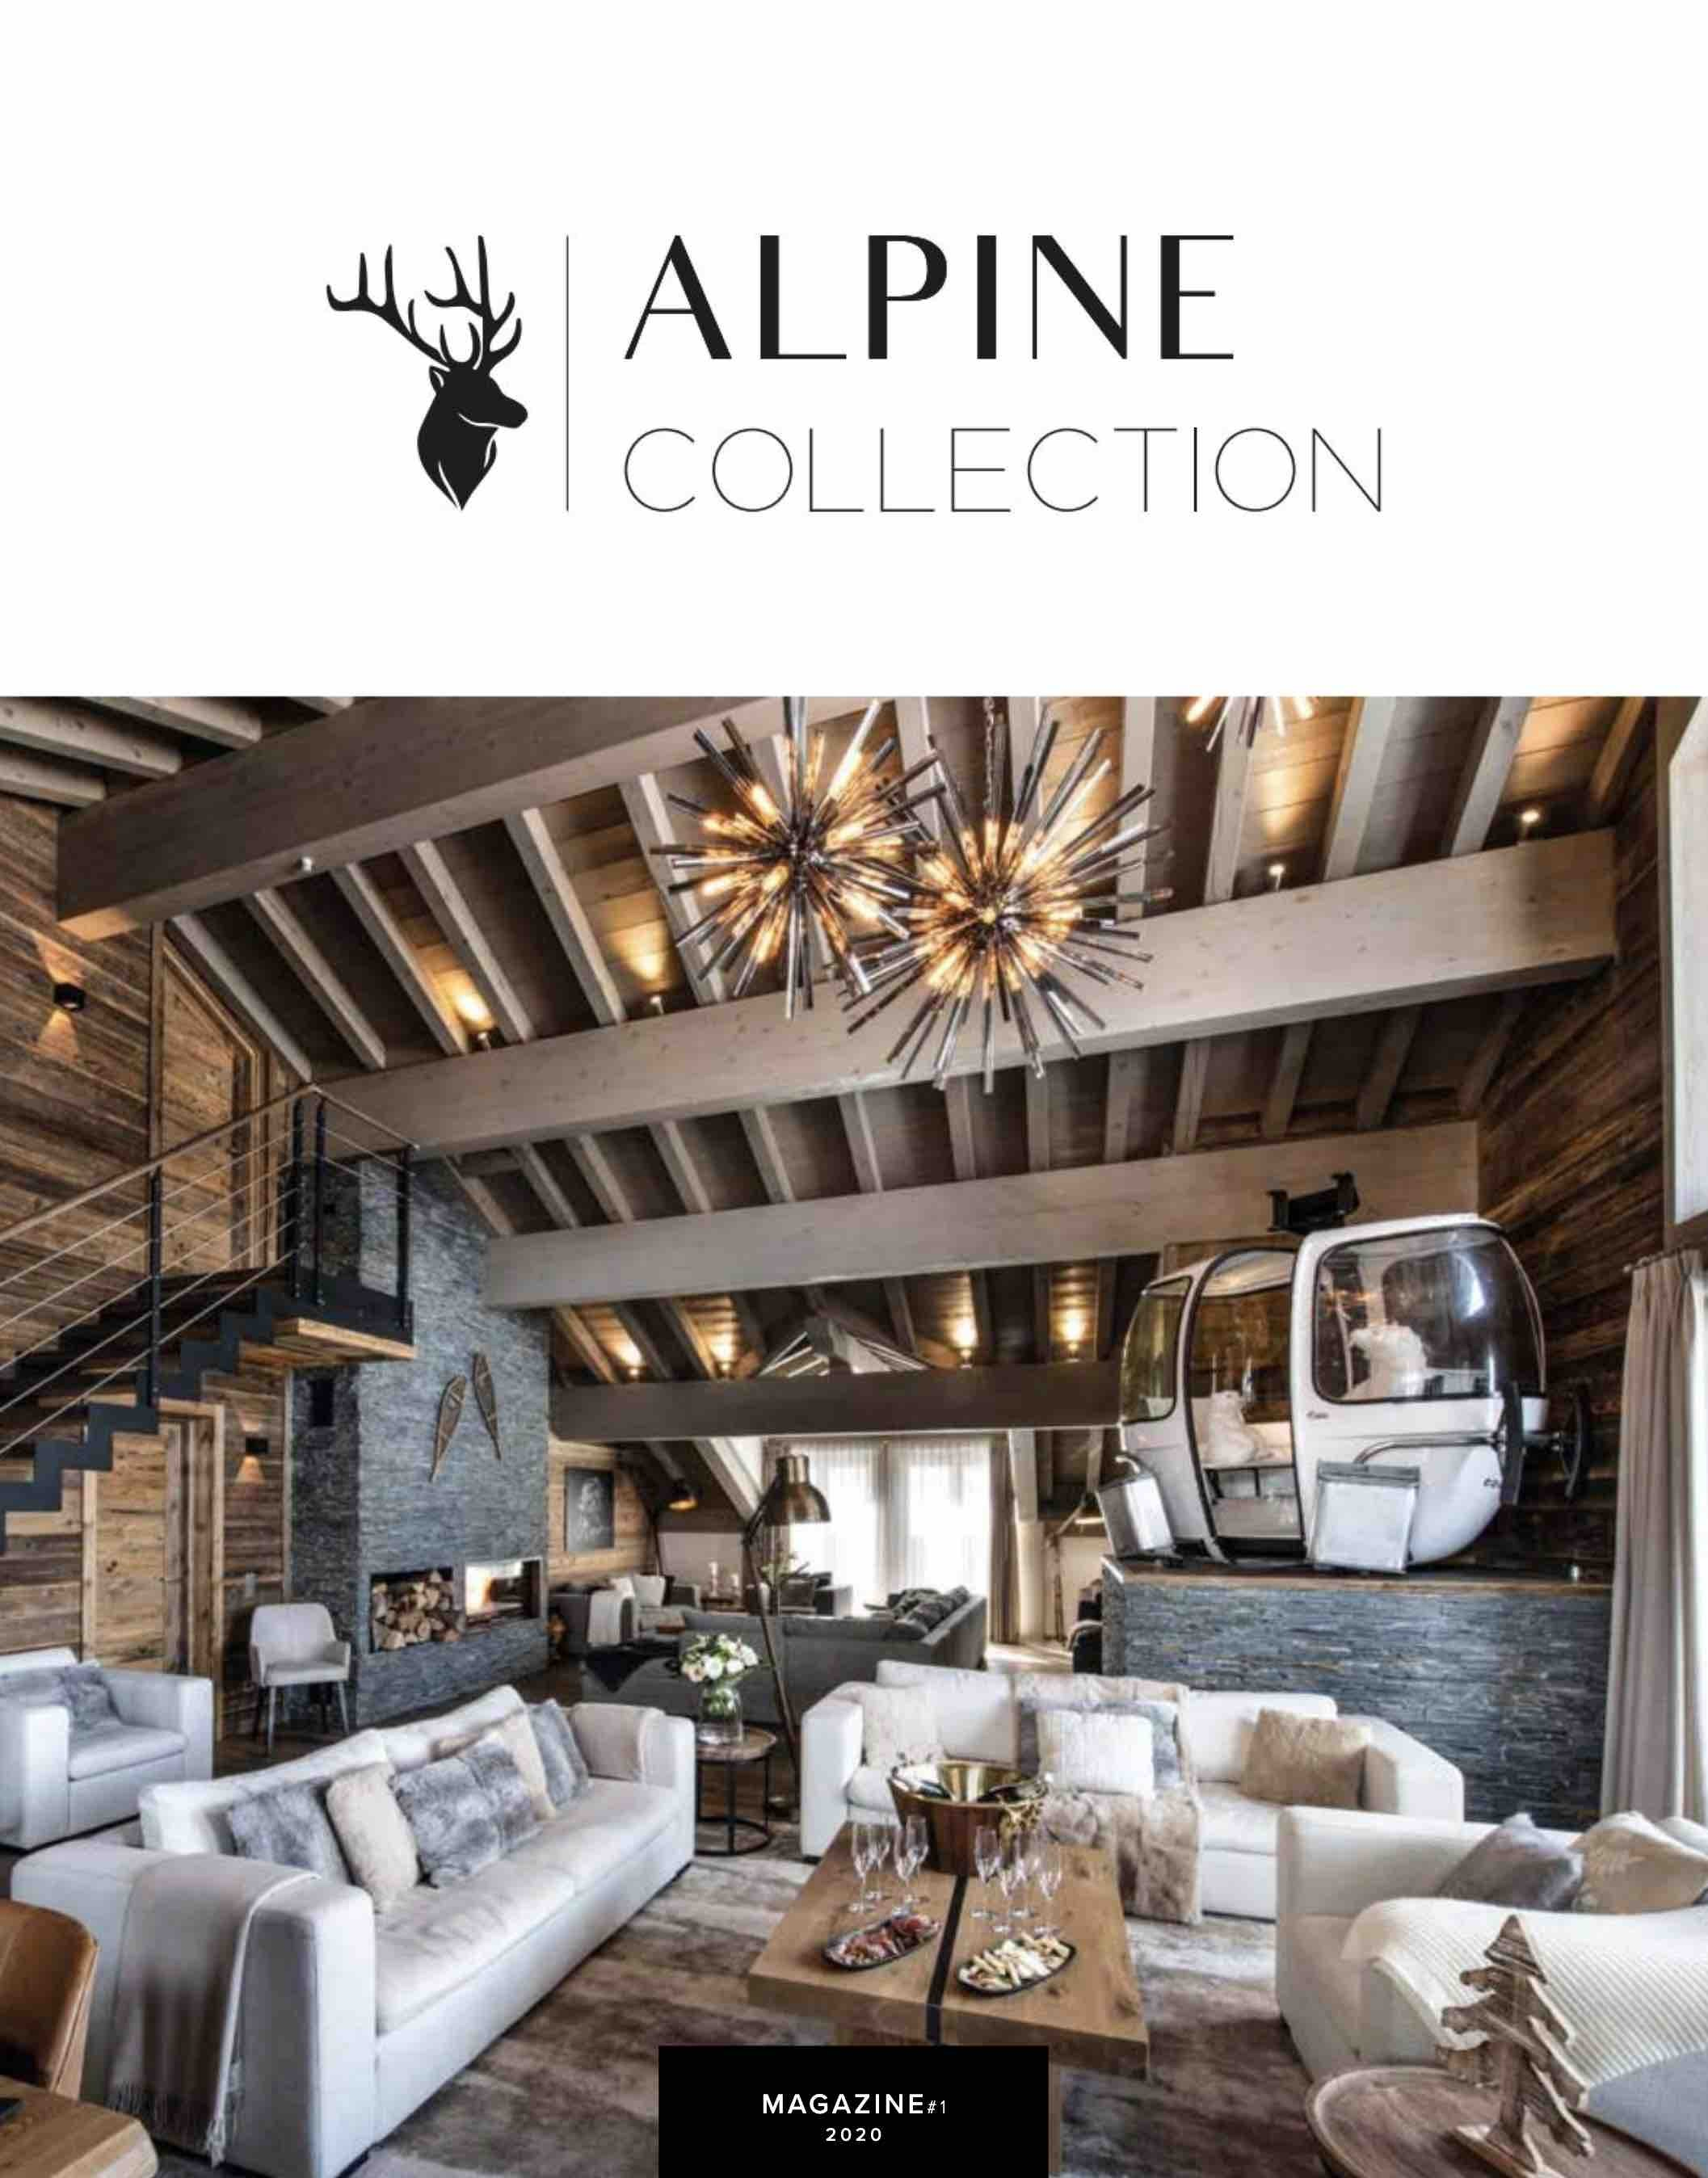 Alpine Collection